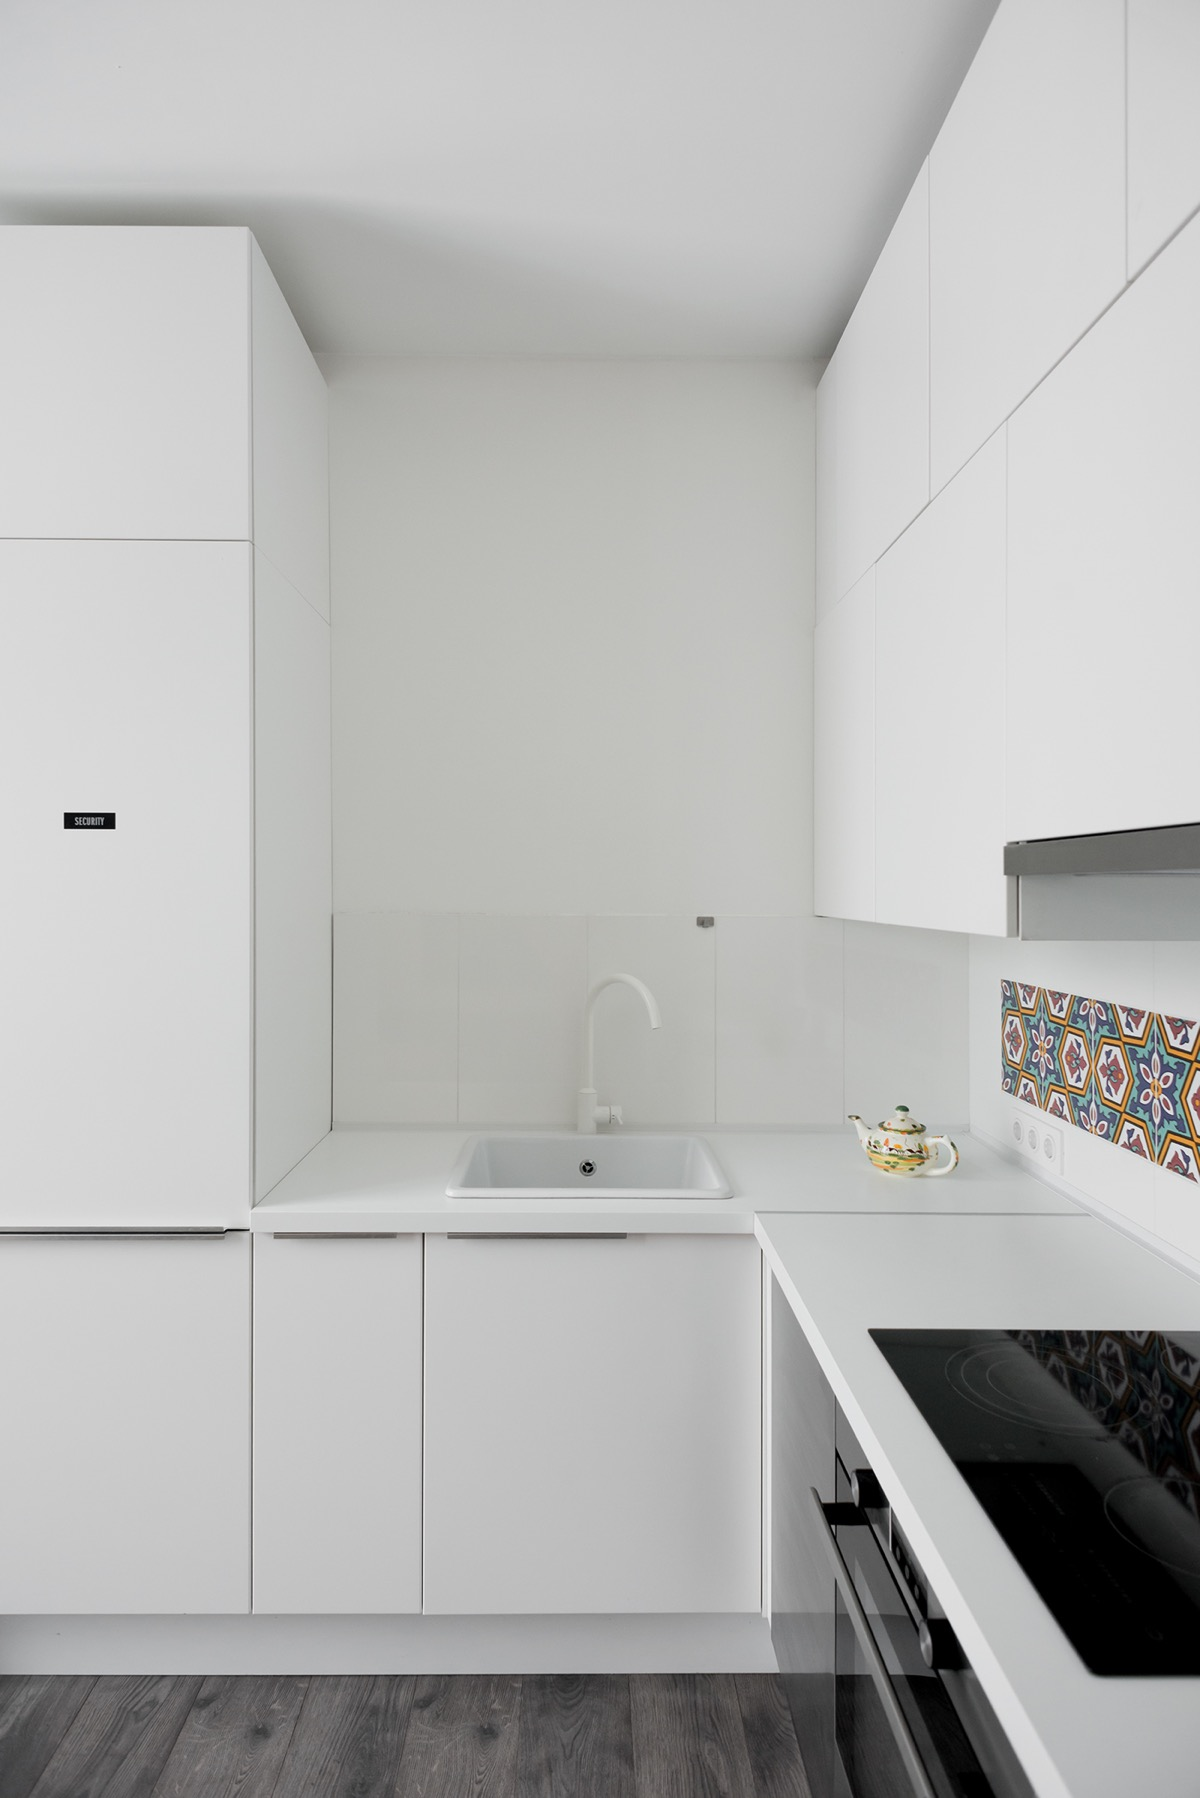 50 Splendid Small Kitchens And Ideas You Can Use From Them images 5